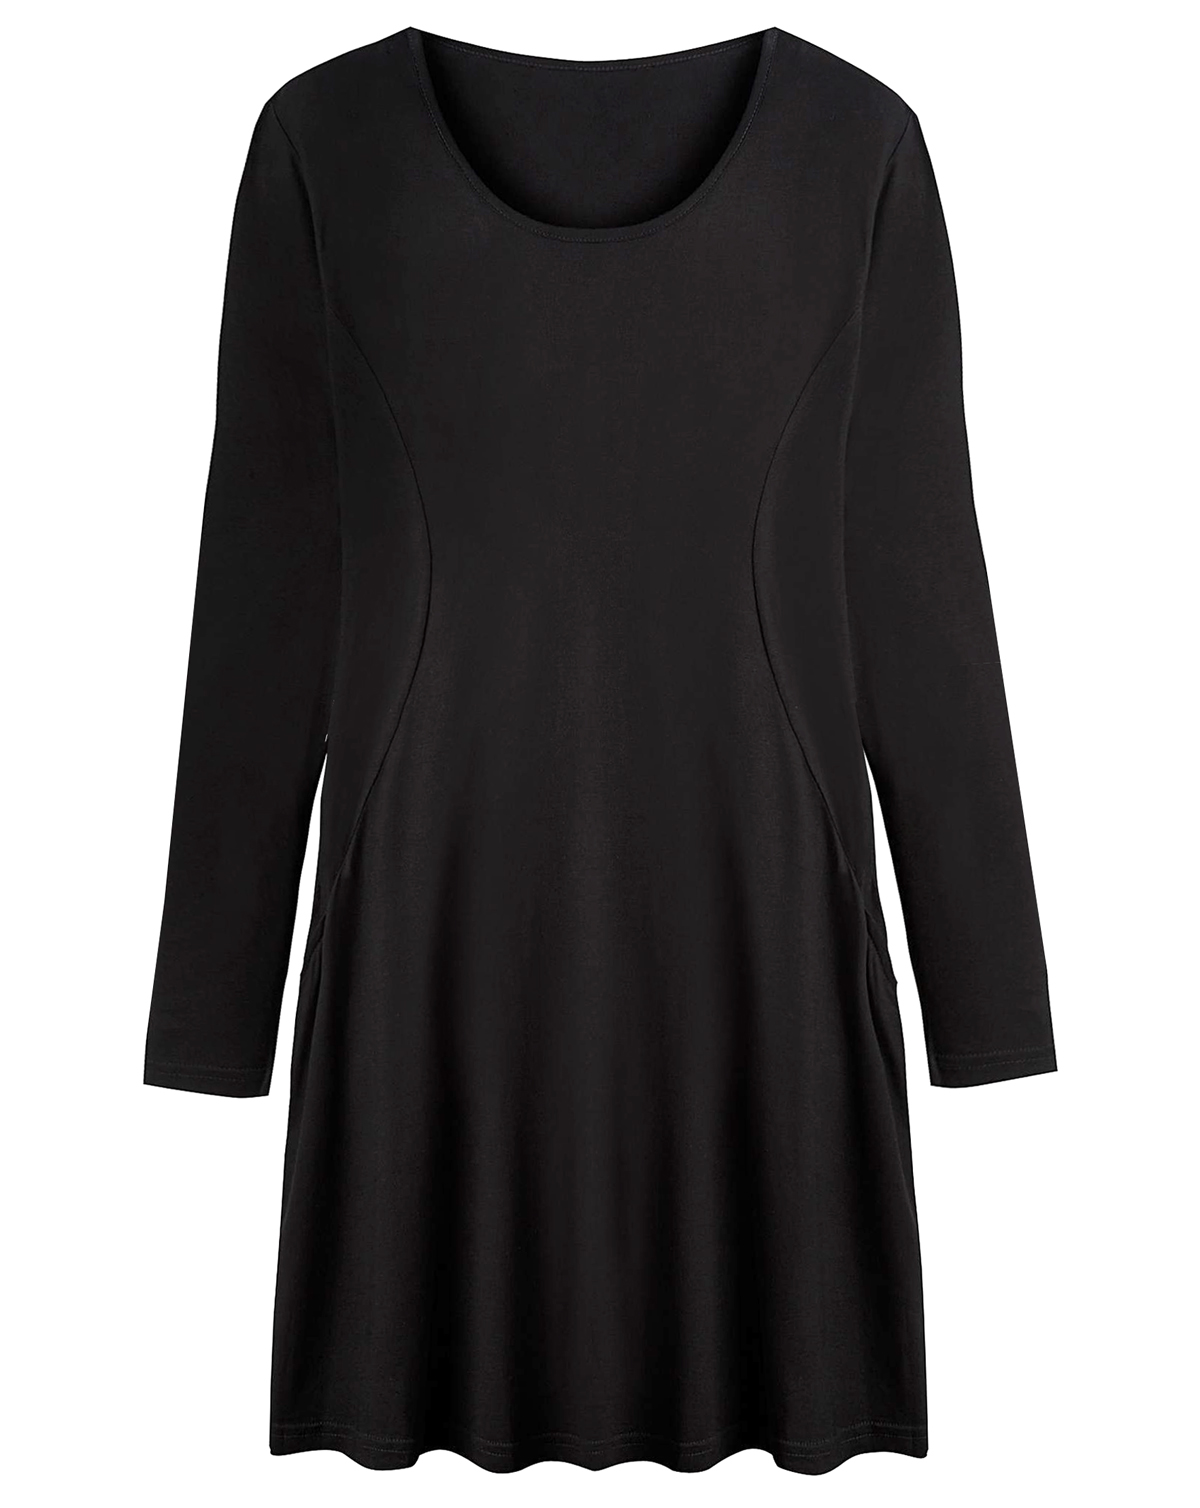 d93cf47a51cc Label Be - - BLACK Plain Swing Dress with Pockets - Plus Size 14 to 36